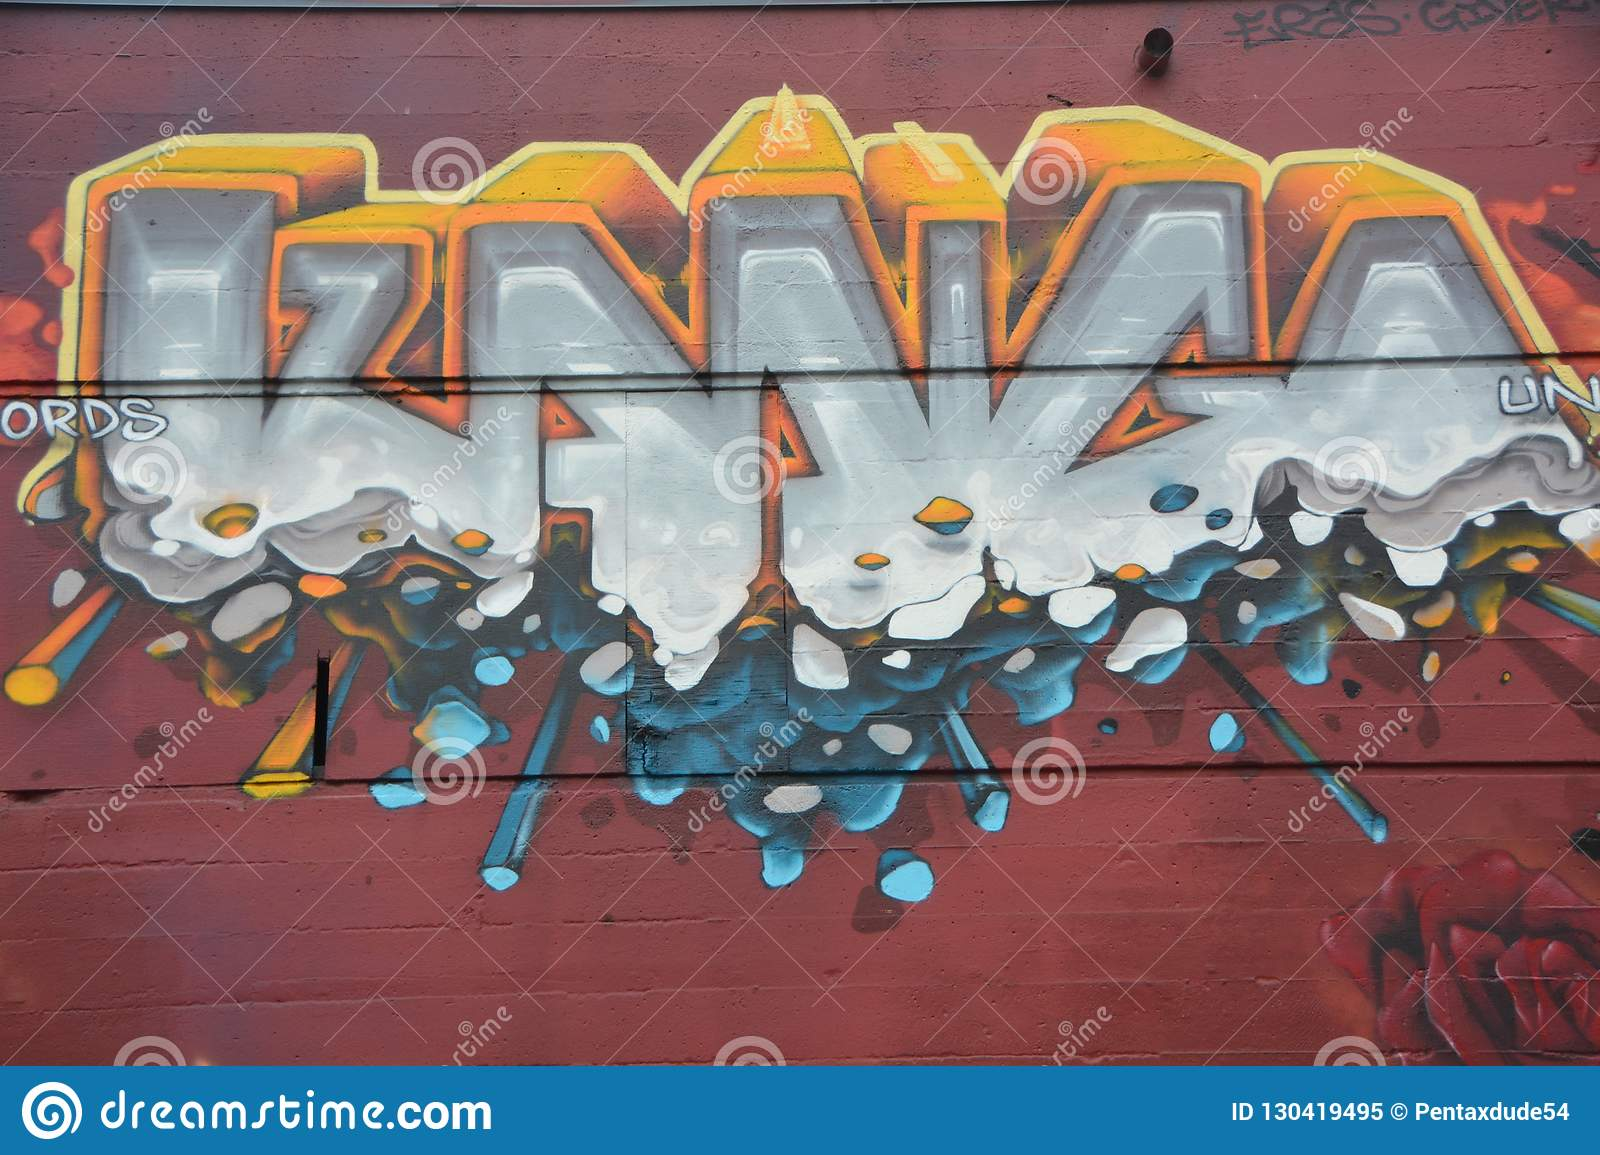 Abstract graffiti on red wall in Portland, Oregon